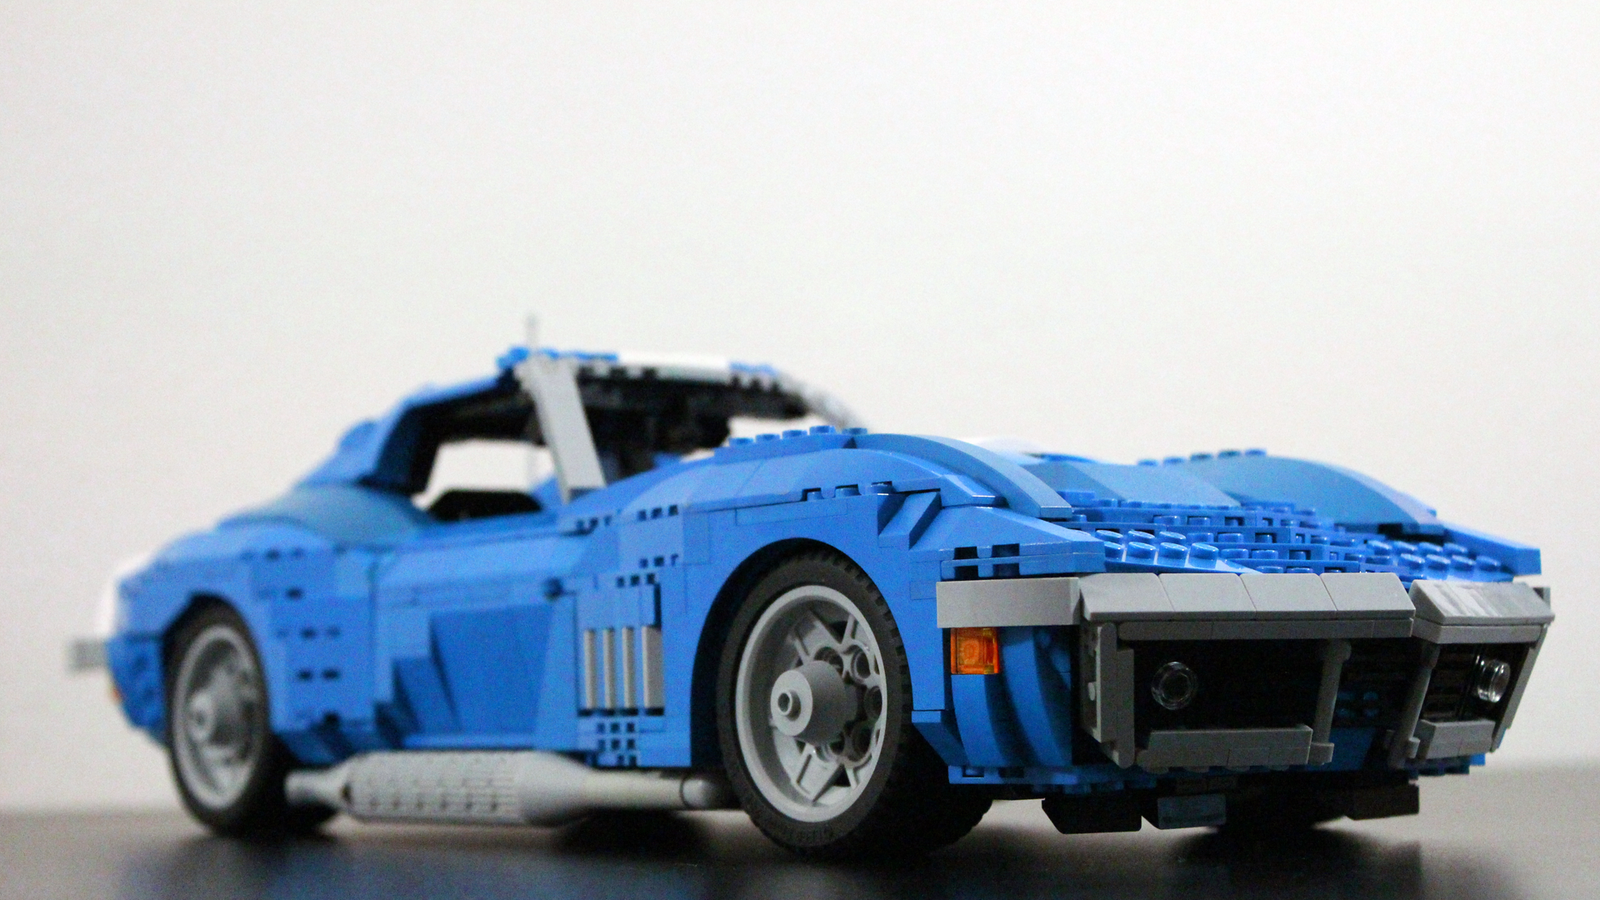 1969 Lego Corvette Is a Bricked Masterpiece